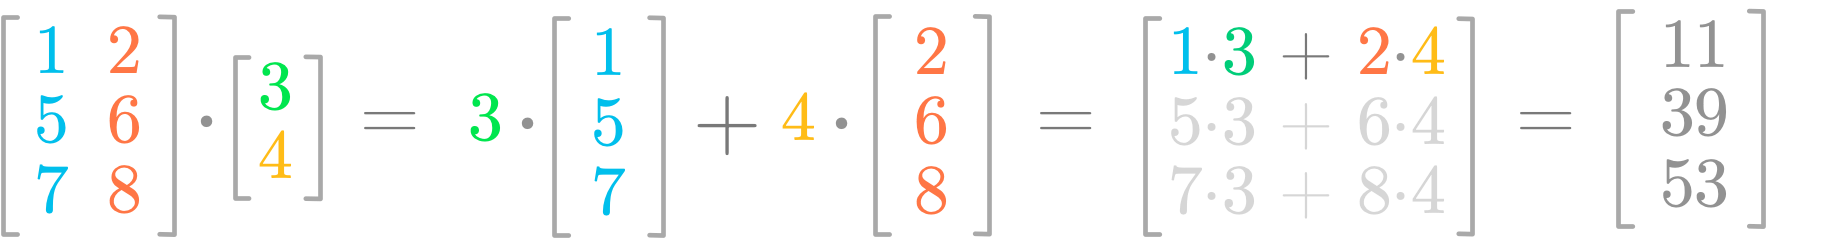 Figure 3: The vectors values are weighting the columns of the matrix.